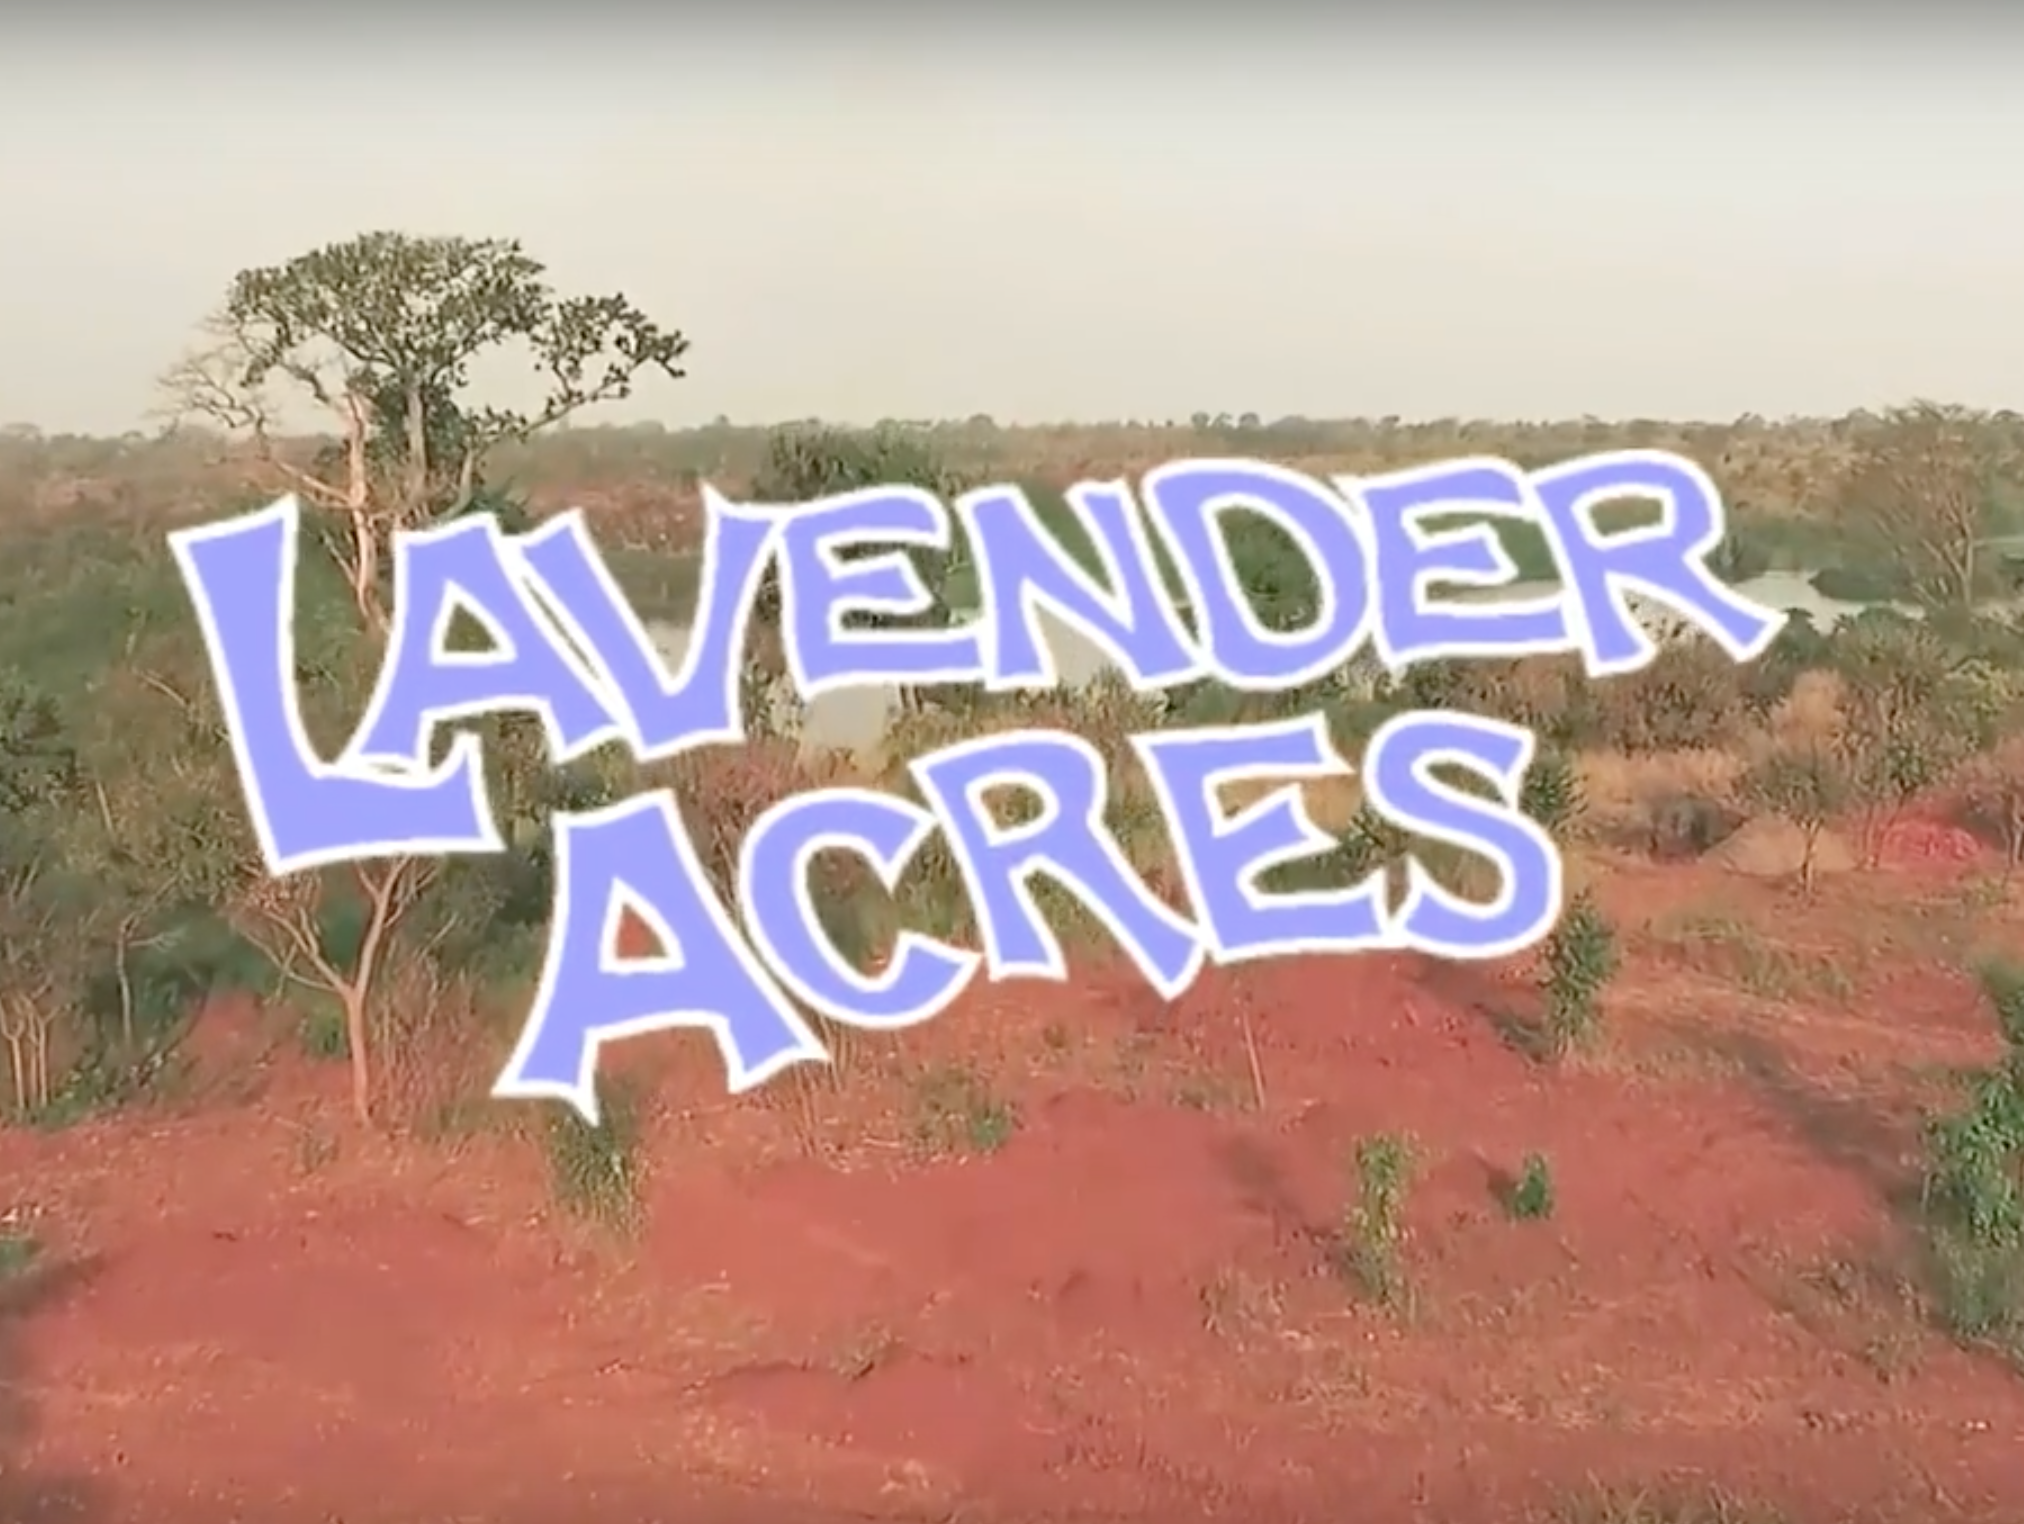 Lavender Acres